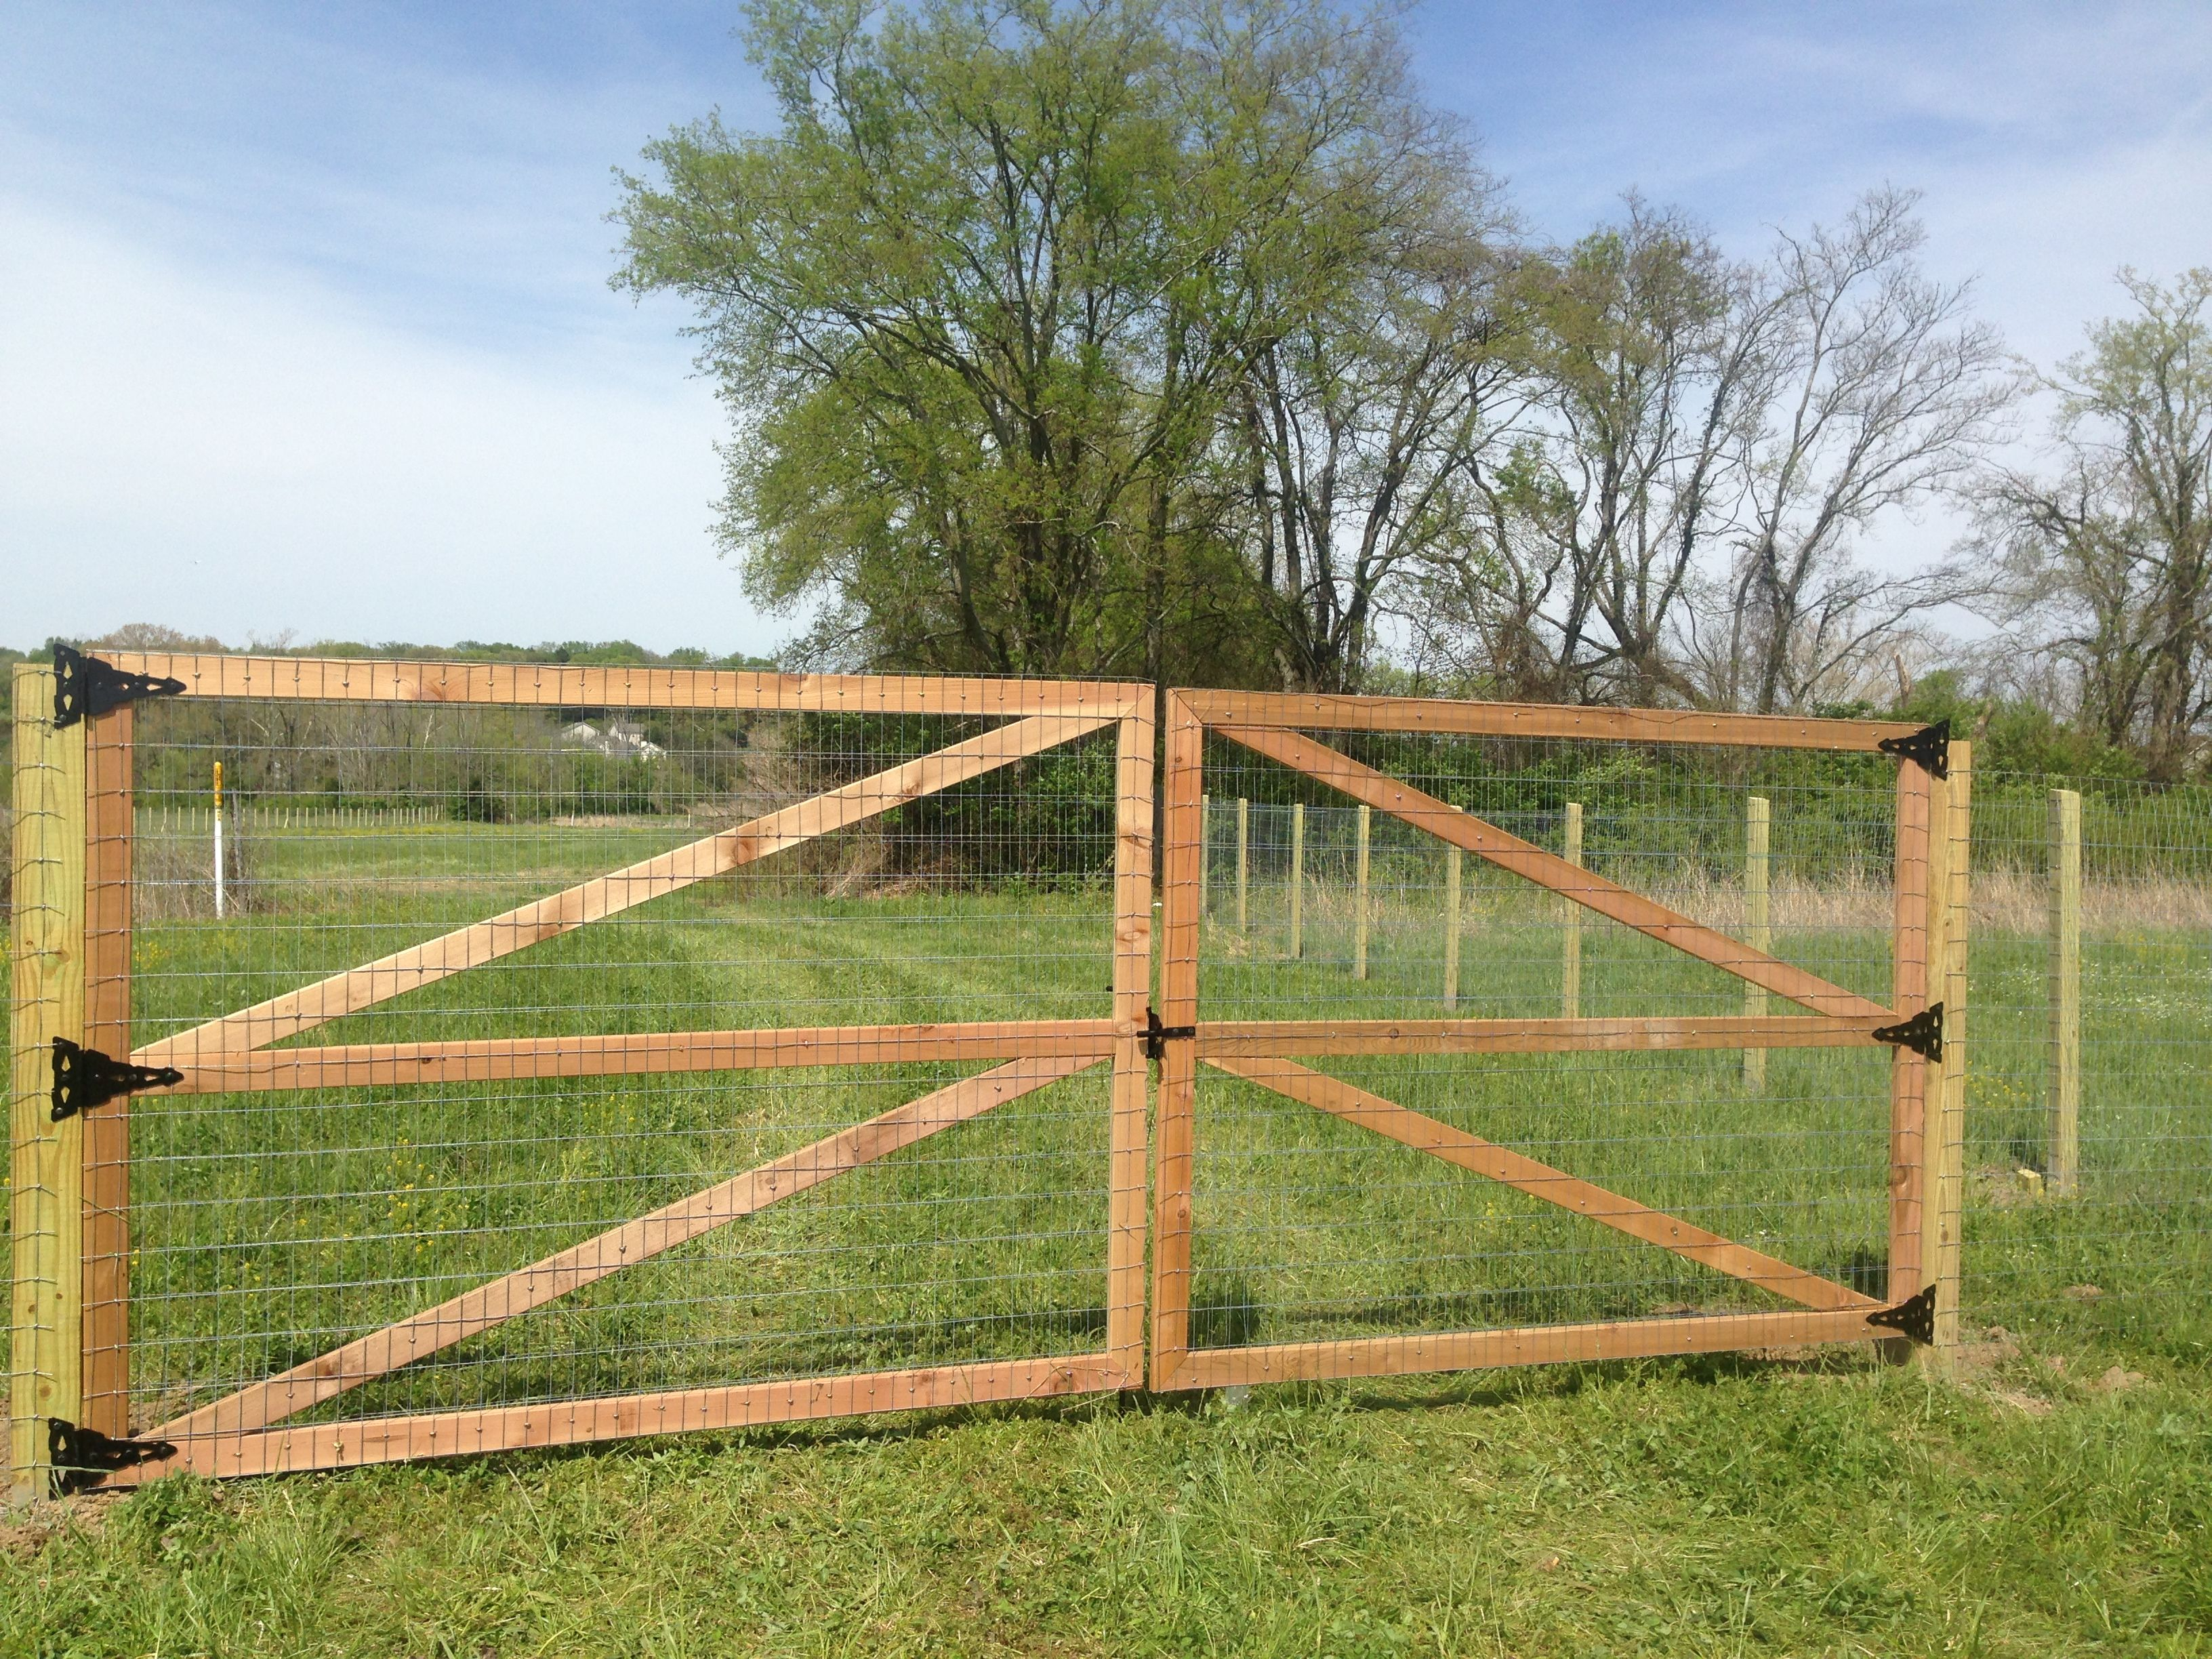 welded wire fence with wooden posts - Google Search | Fencing ...